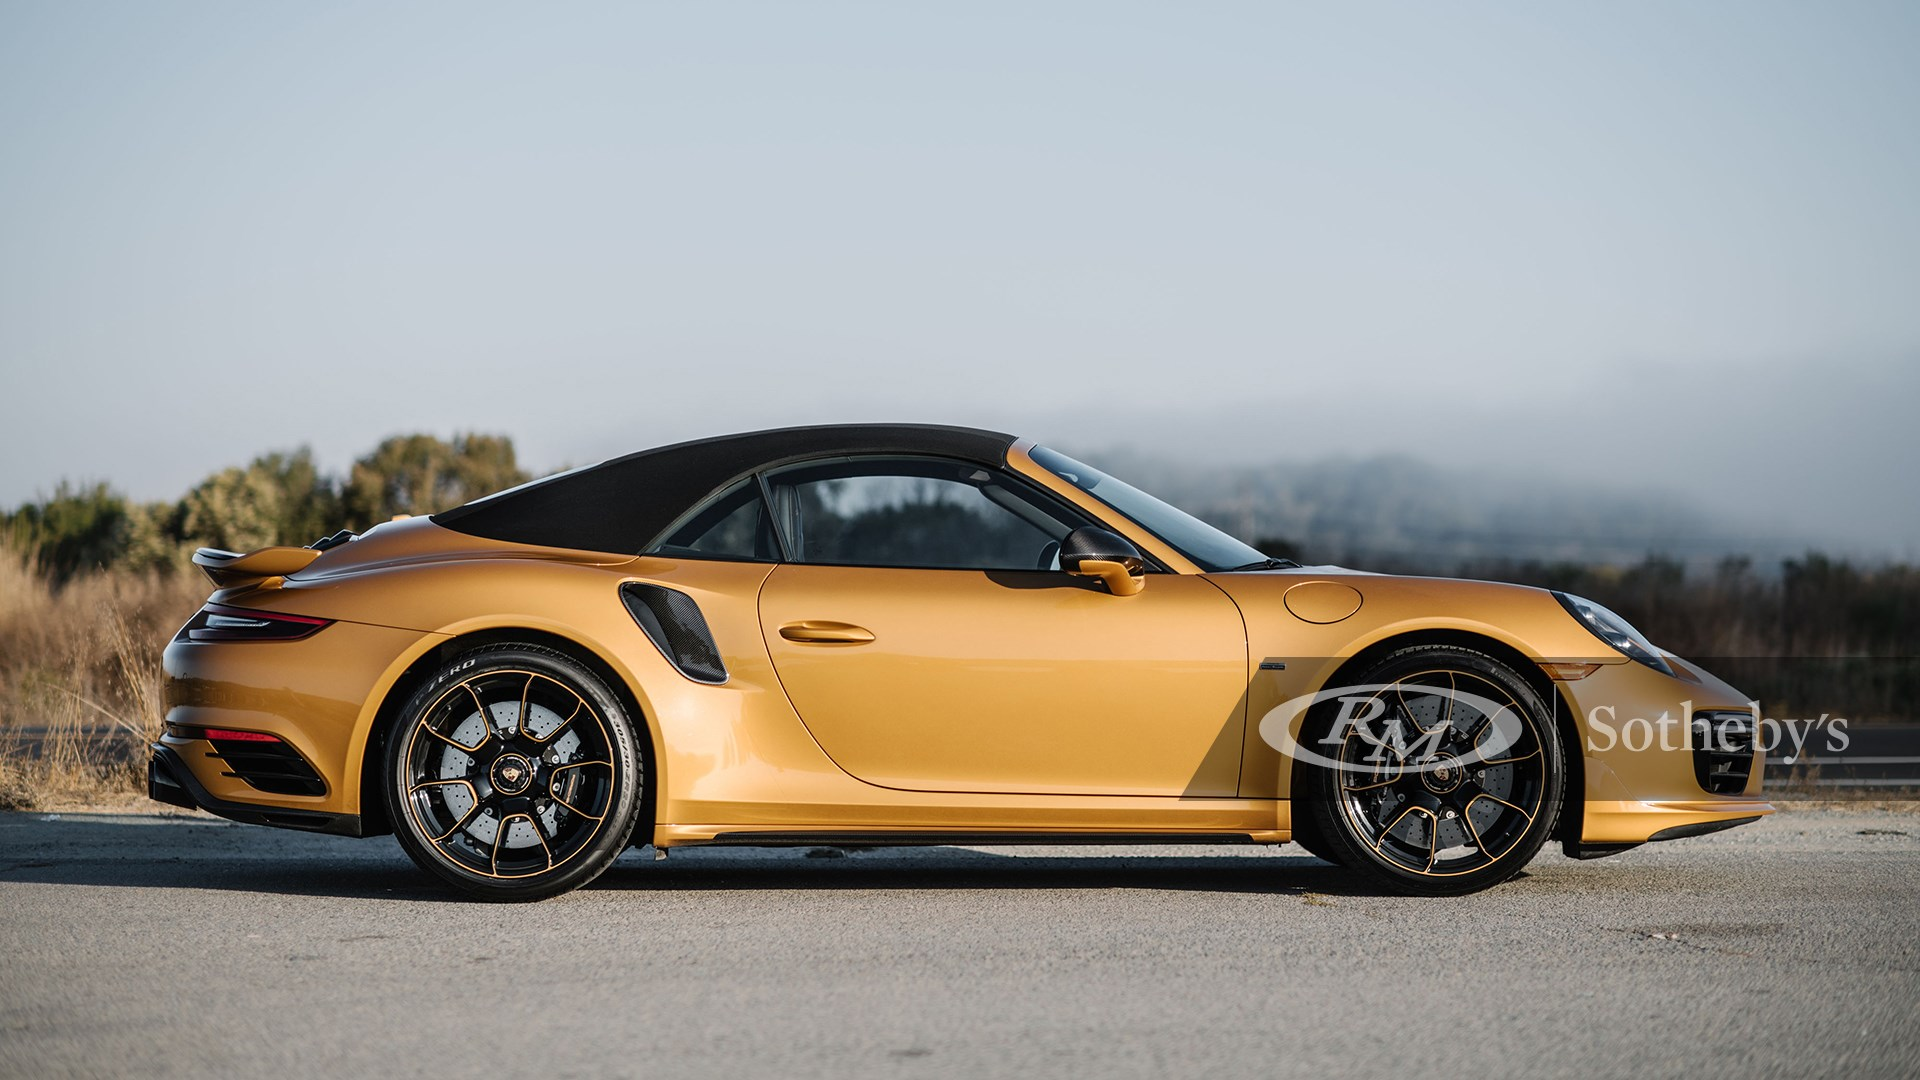 RM Sotheby's Open Roads Fall 2020, Blog, 2019 Porsche 911 Turbo S Cabriolet Exclusive Series